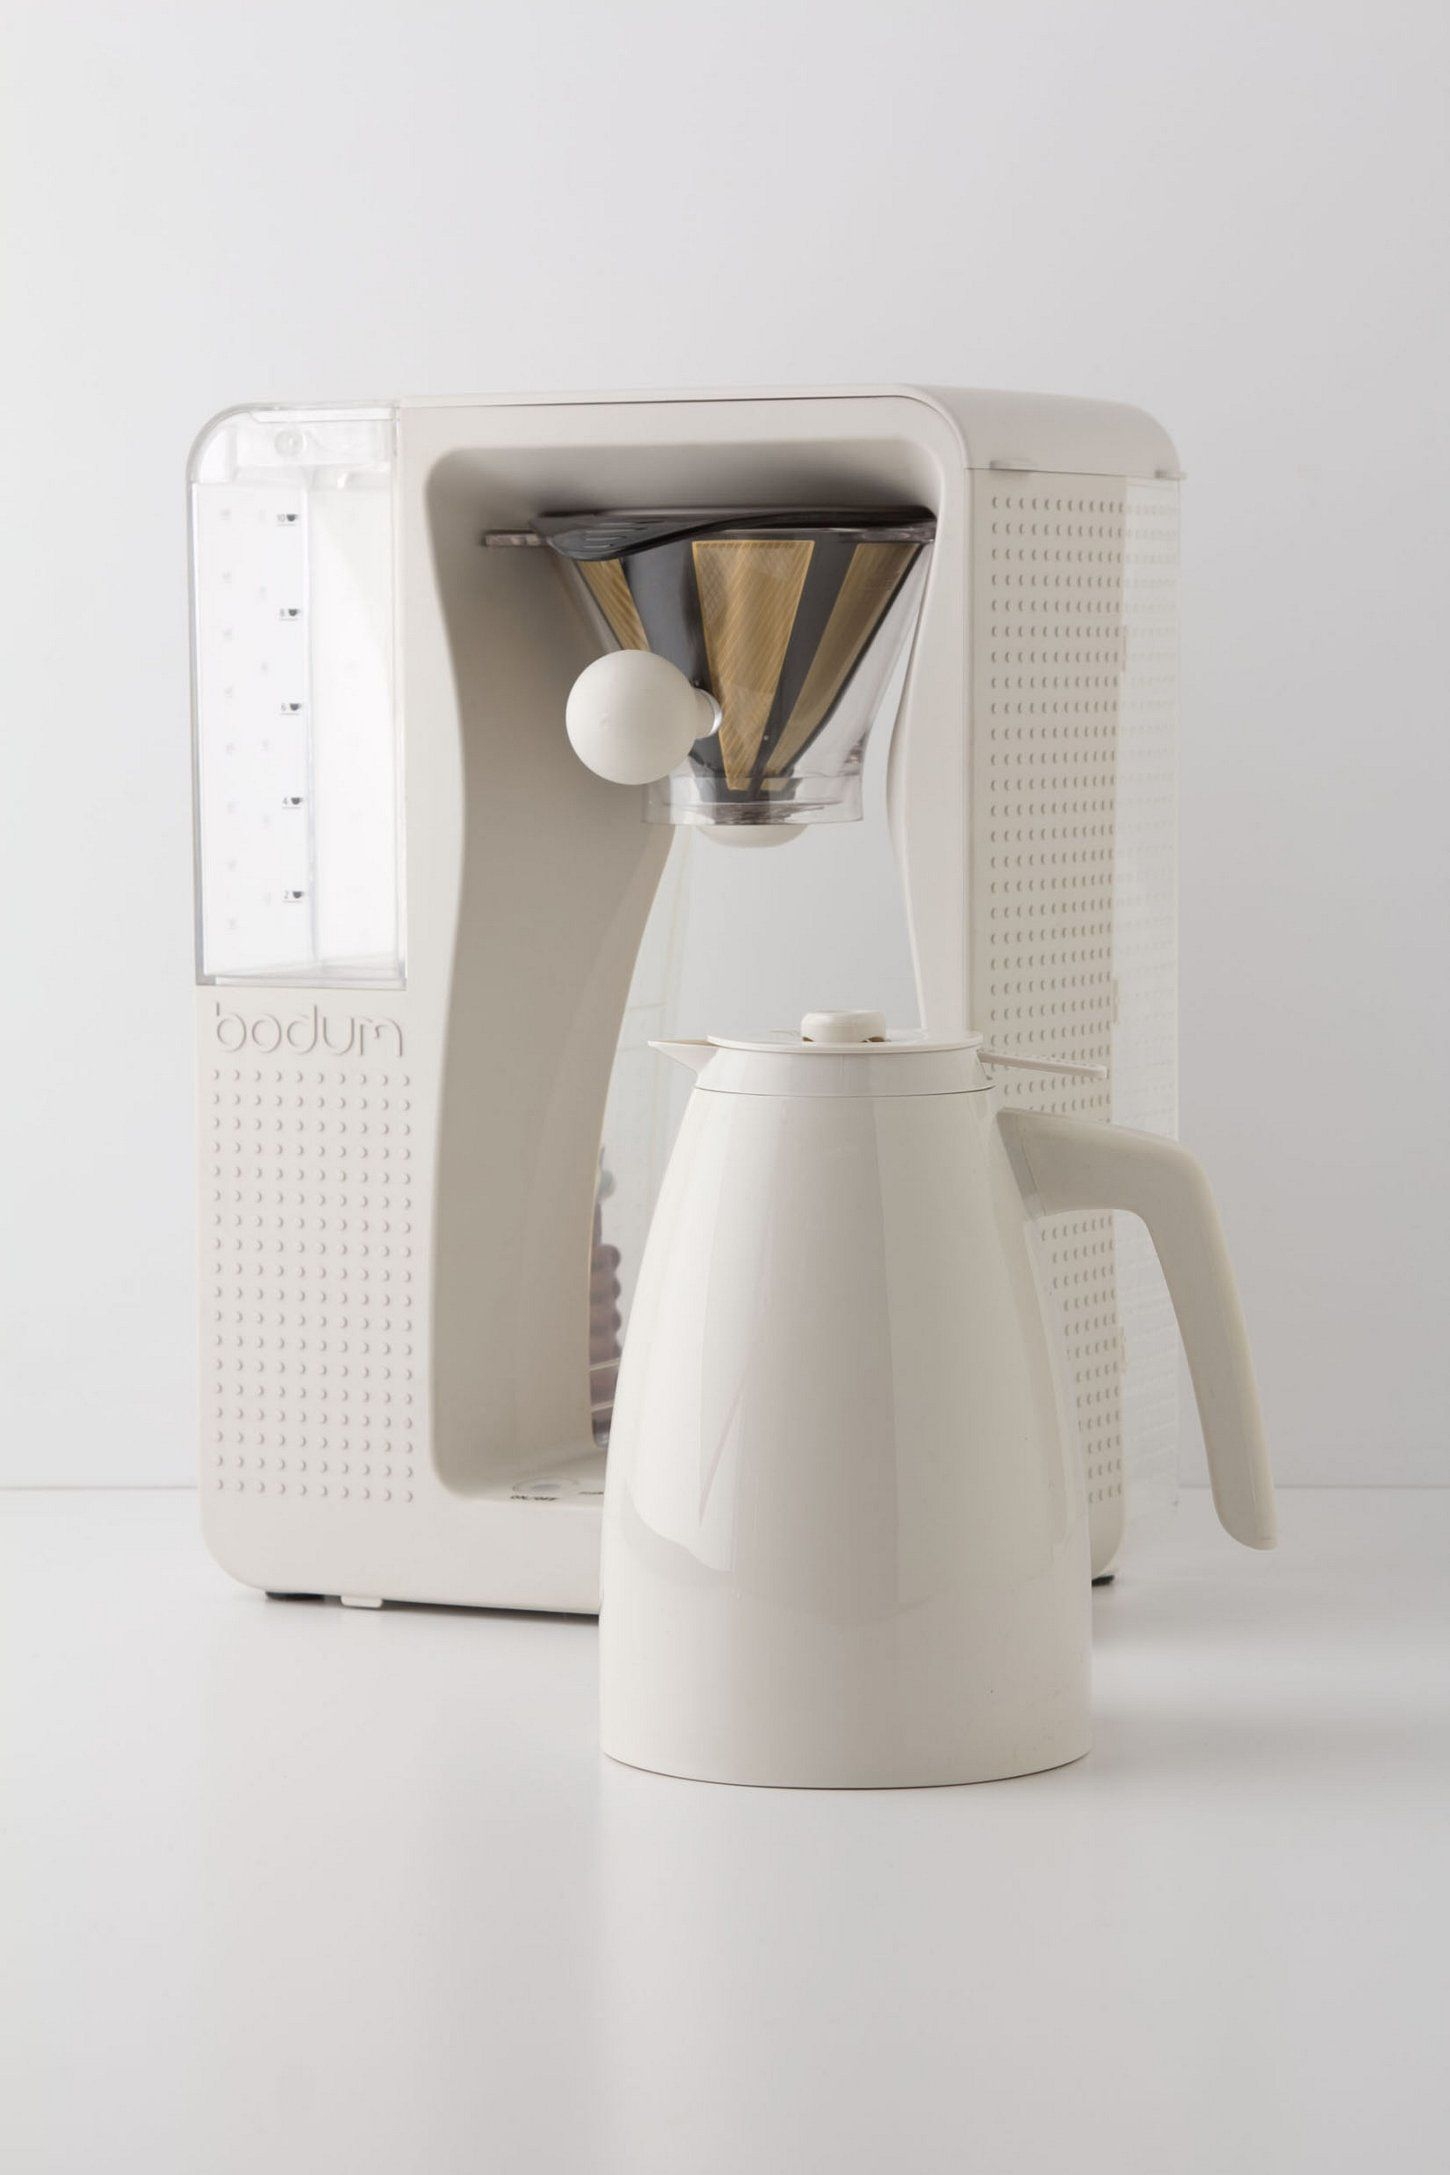 New Coffee Maker Design : Bistro Brew Coffee Maker - Anthropologie.com the products Pinterest Coffee maker, Coffee ...